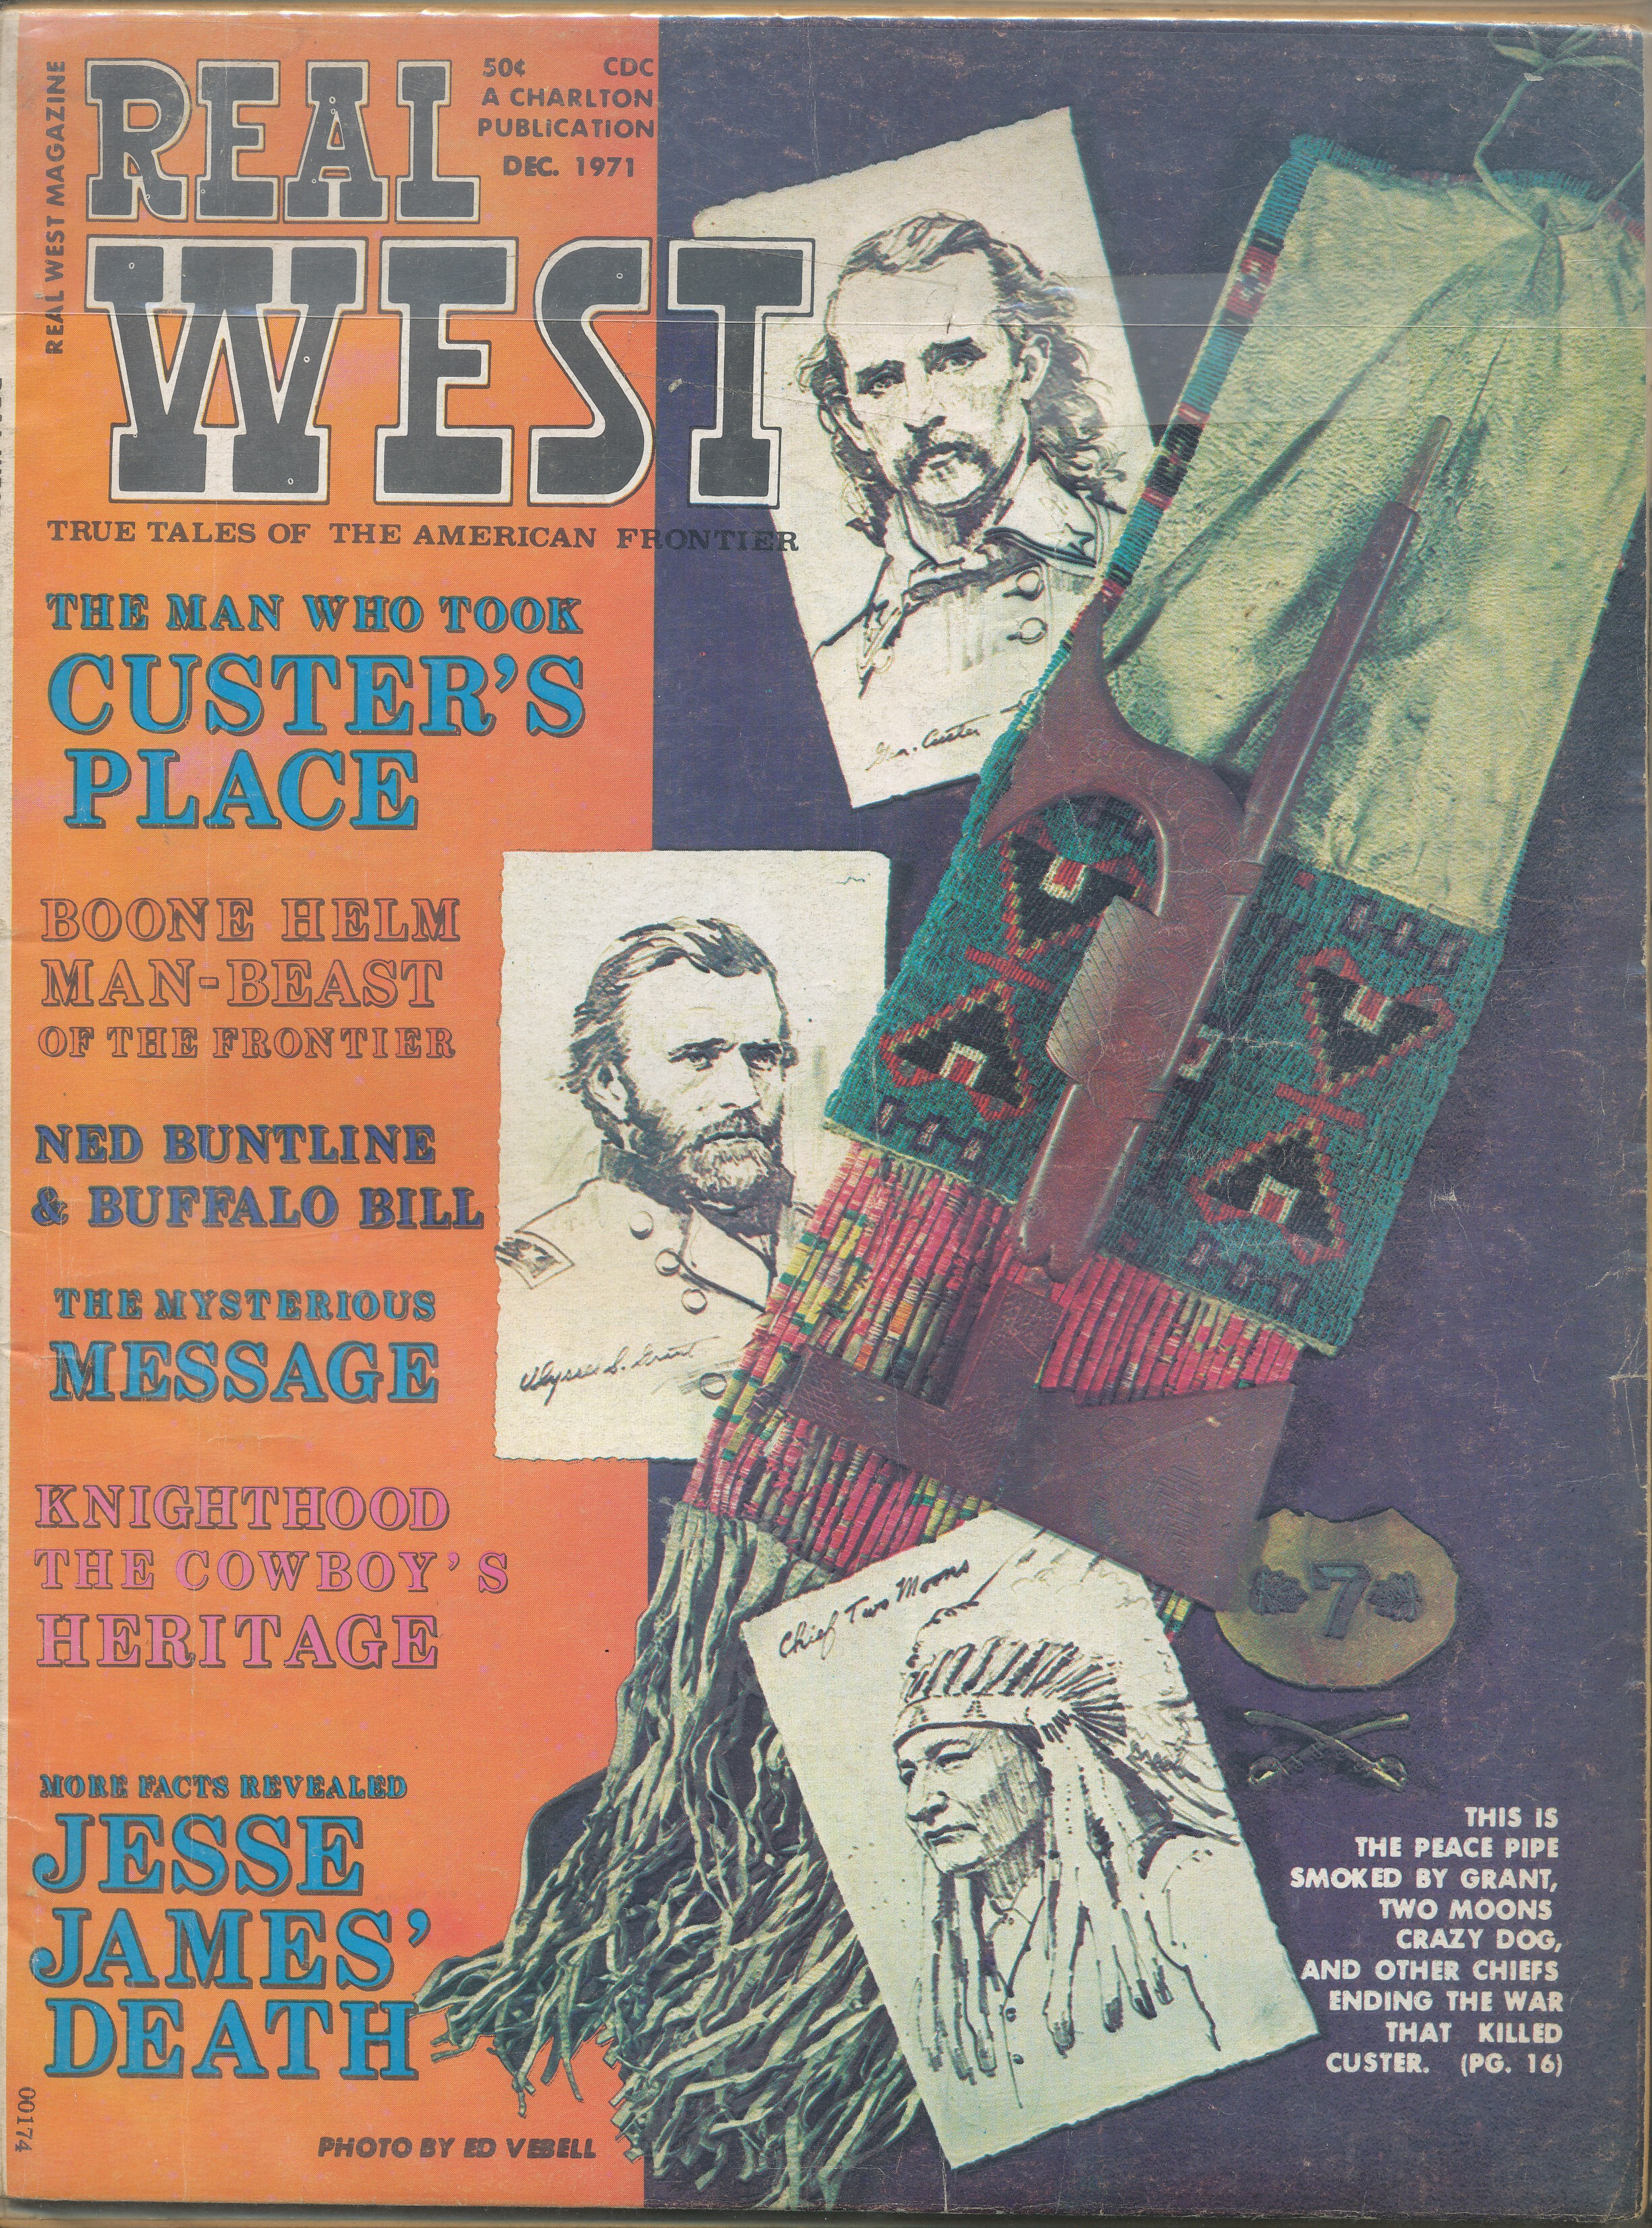 April 1962 True West Magazine and 1971 Real West Magazine